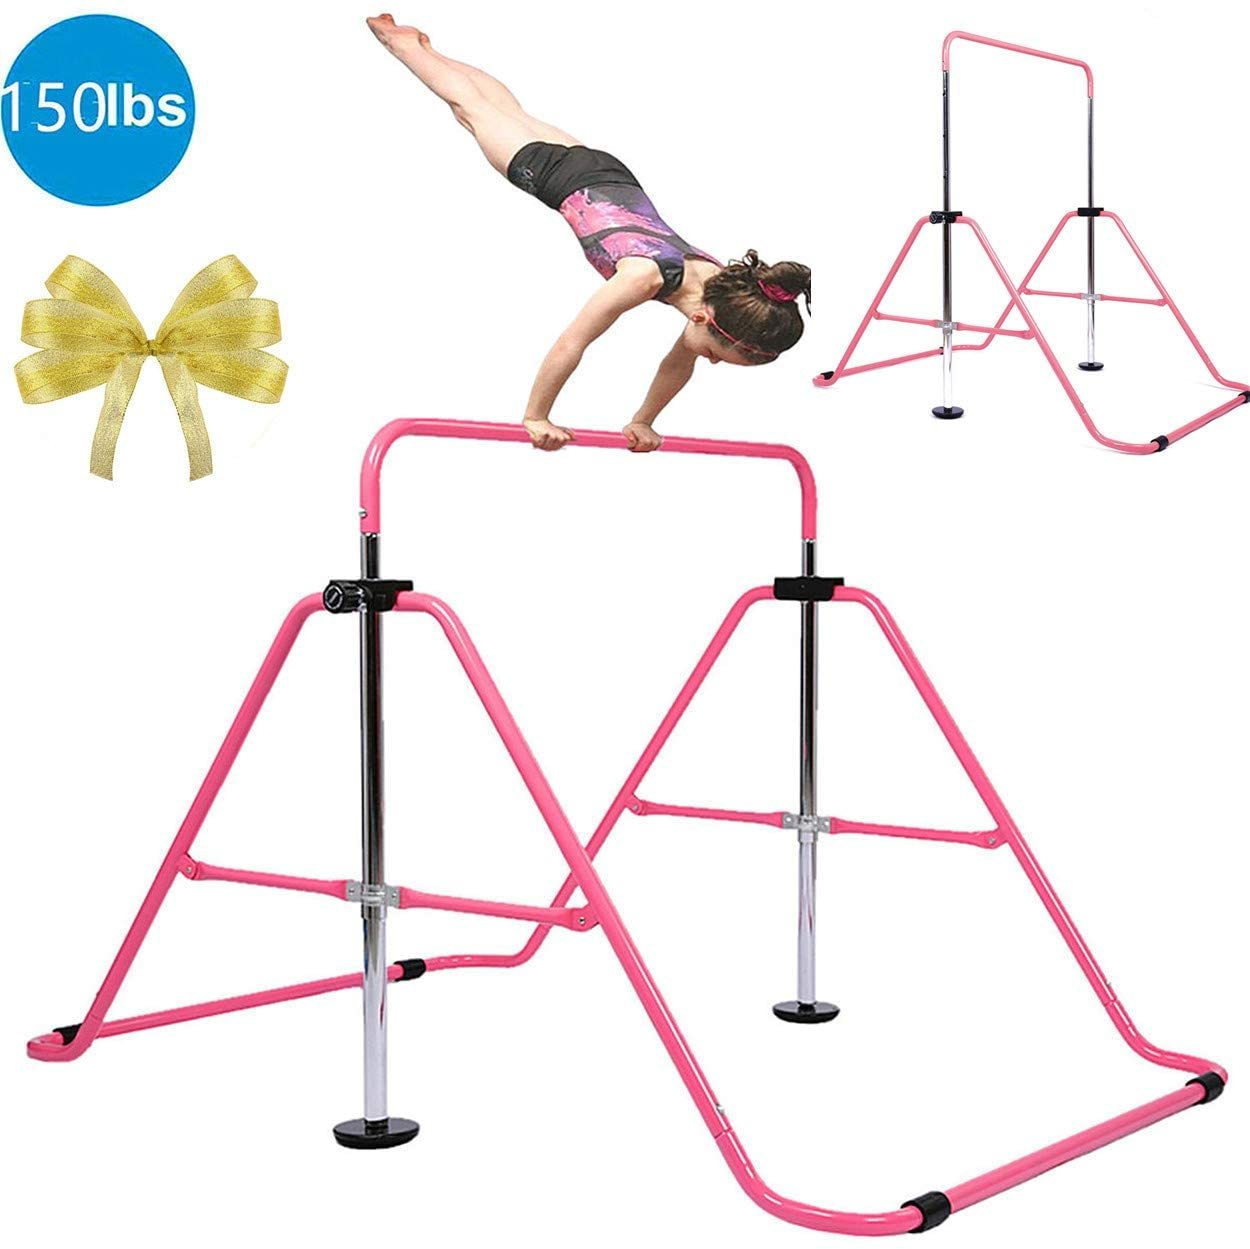 Gymanstic Bar Kids Home Grip Training Boys Girls Gift Set,Gymnastics Training bar Folding Adjustable Height Expandable Horizontal Bars Junior for Age 3-8 Years Old